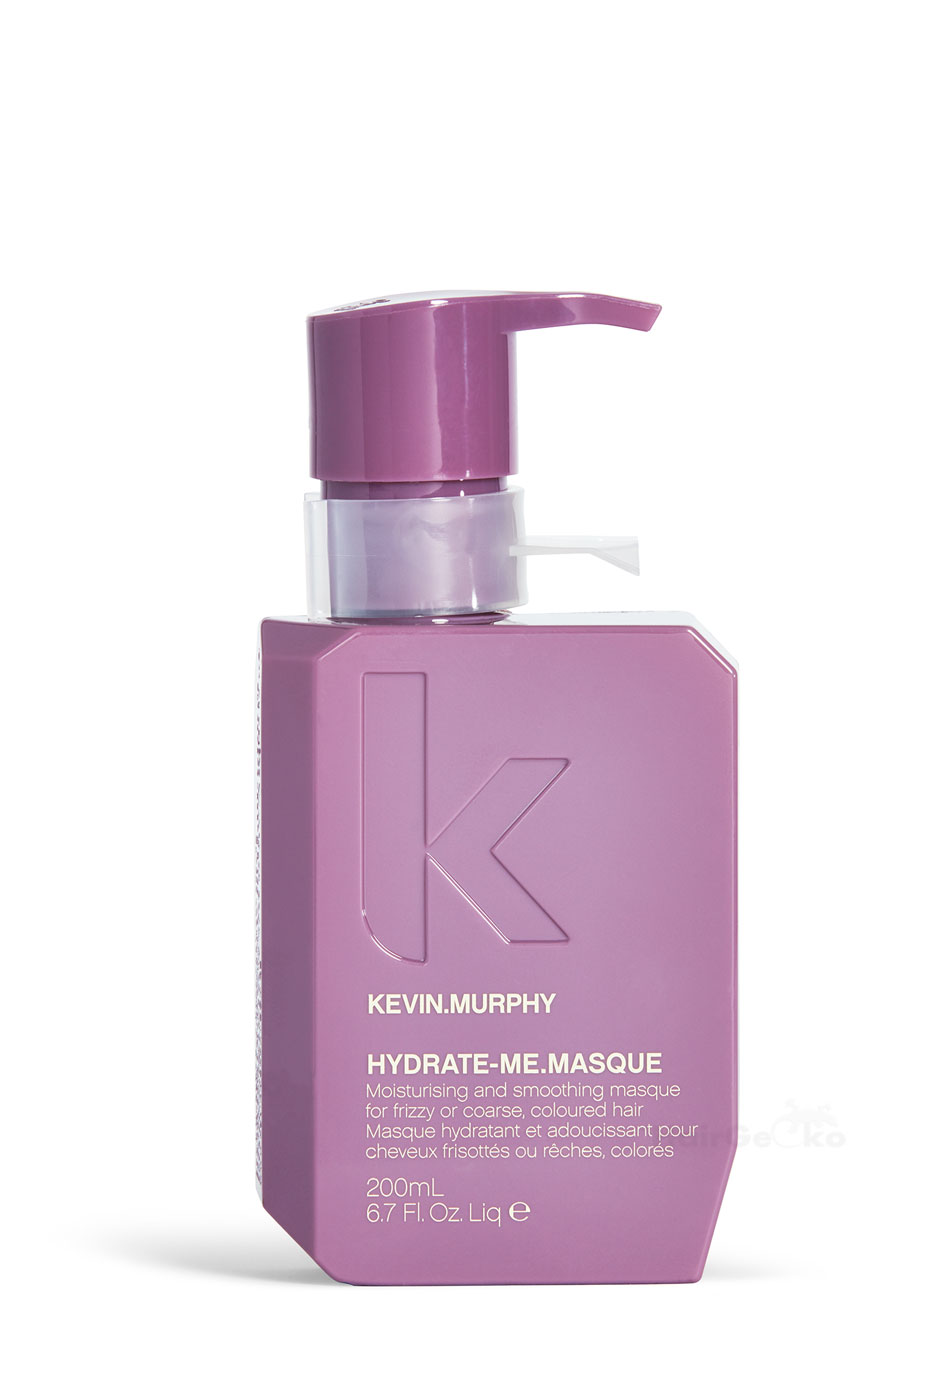 KEVIN.MURPHY HYDRATE-ME.MASQUE 200 ml